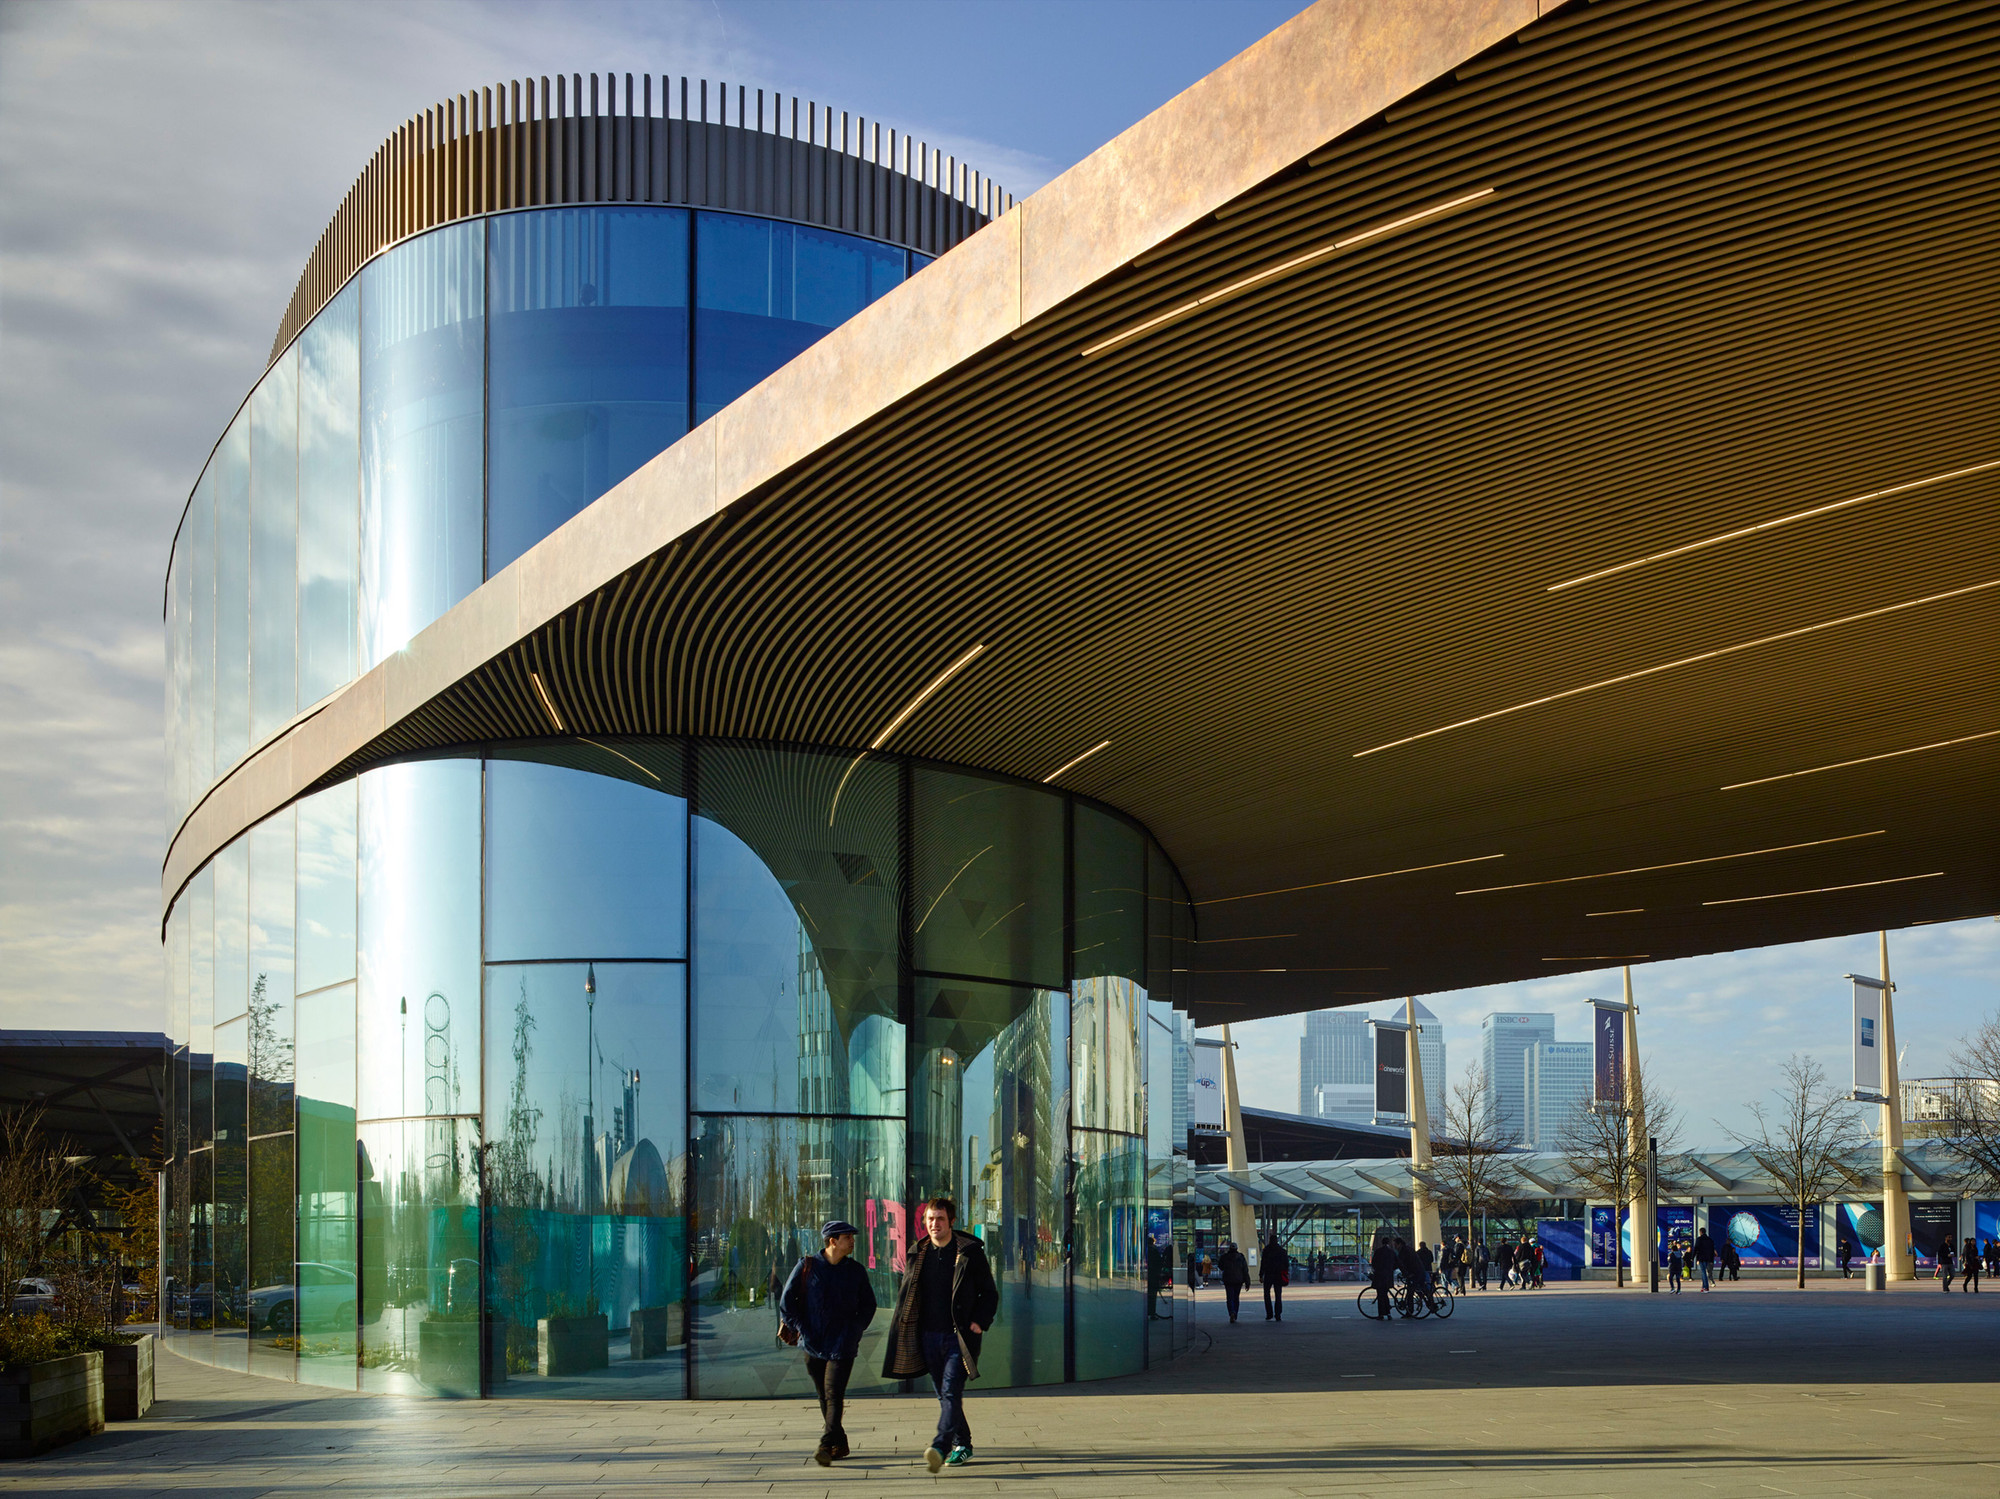 Greenwich Gateway Pavilions / Marks Barfield Architects, © Tim Soar